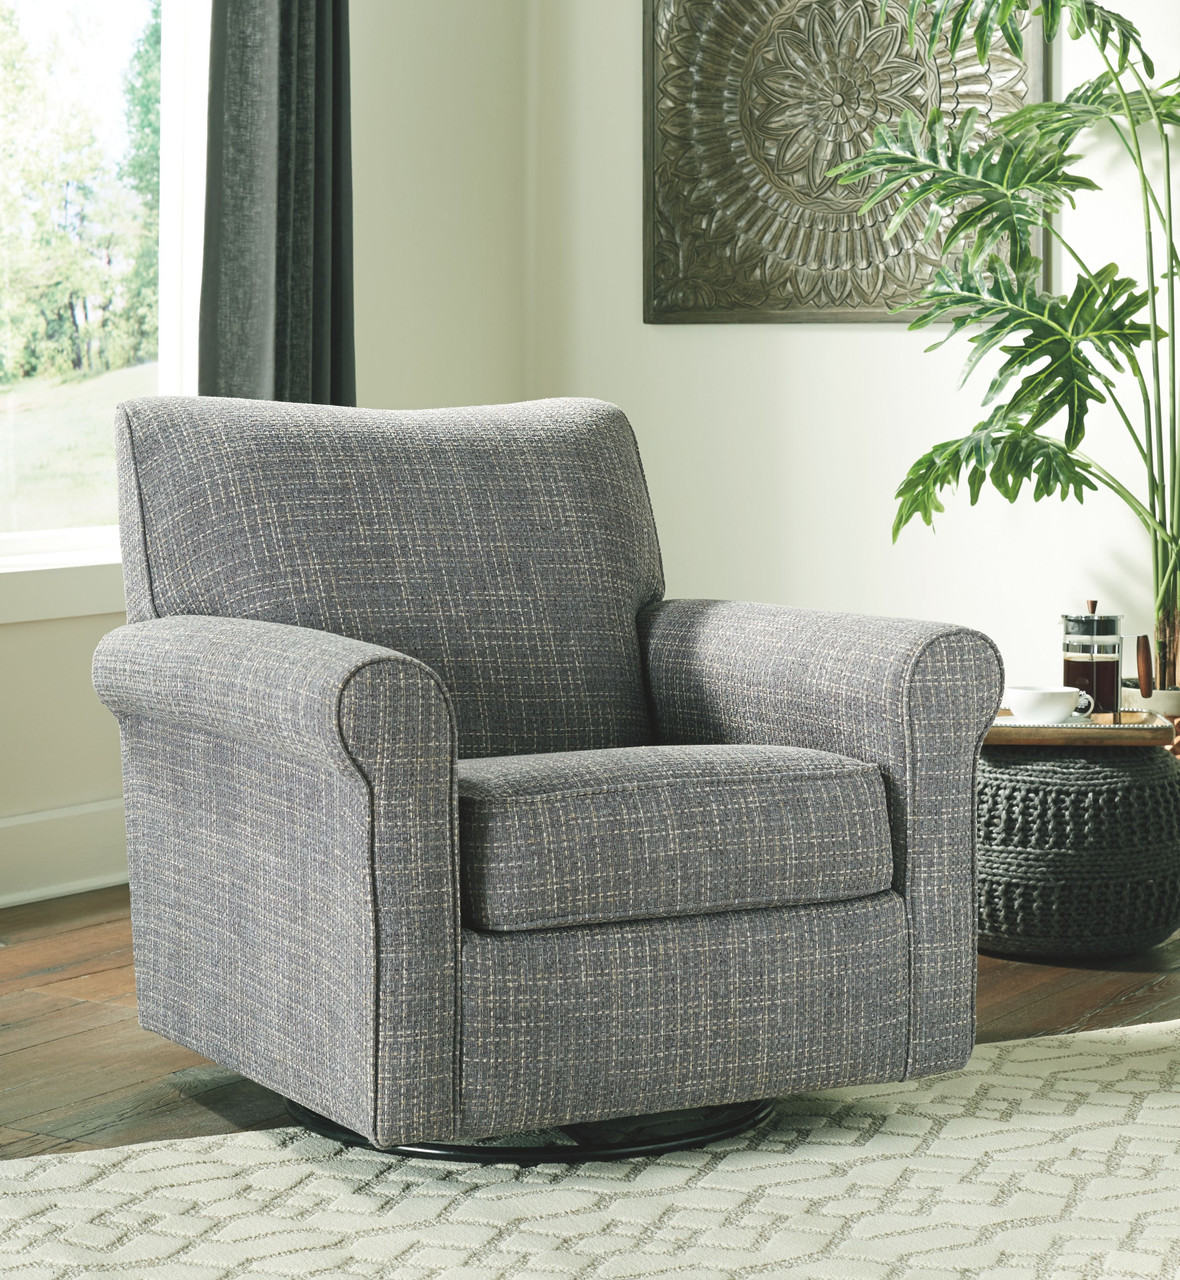 Renley Ash Swivel Glider Accent Chair On Sale At American Furniture Of Slidell Serving Slidell La